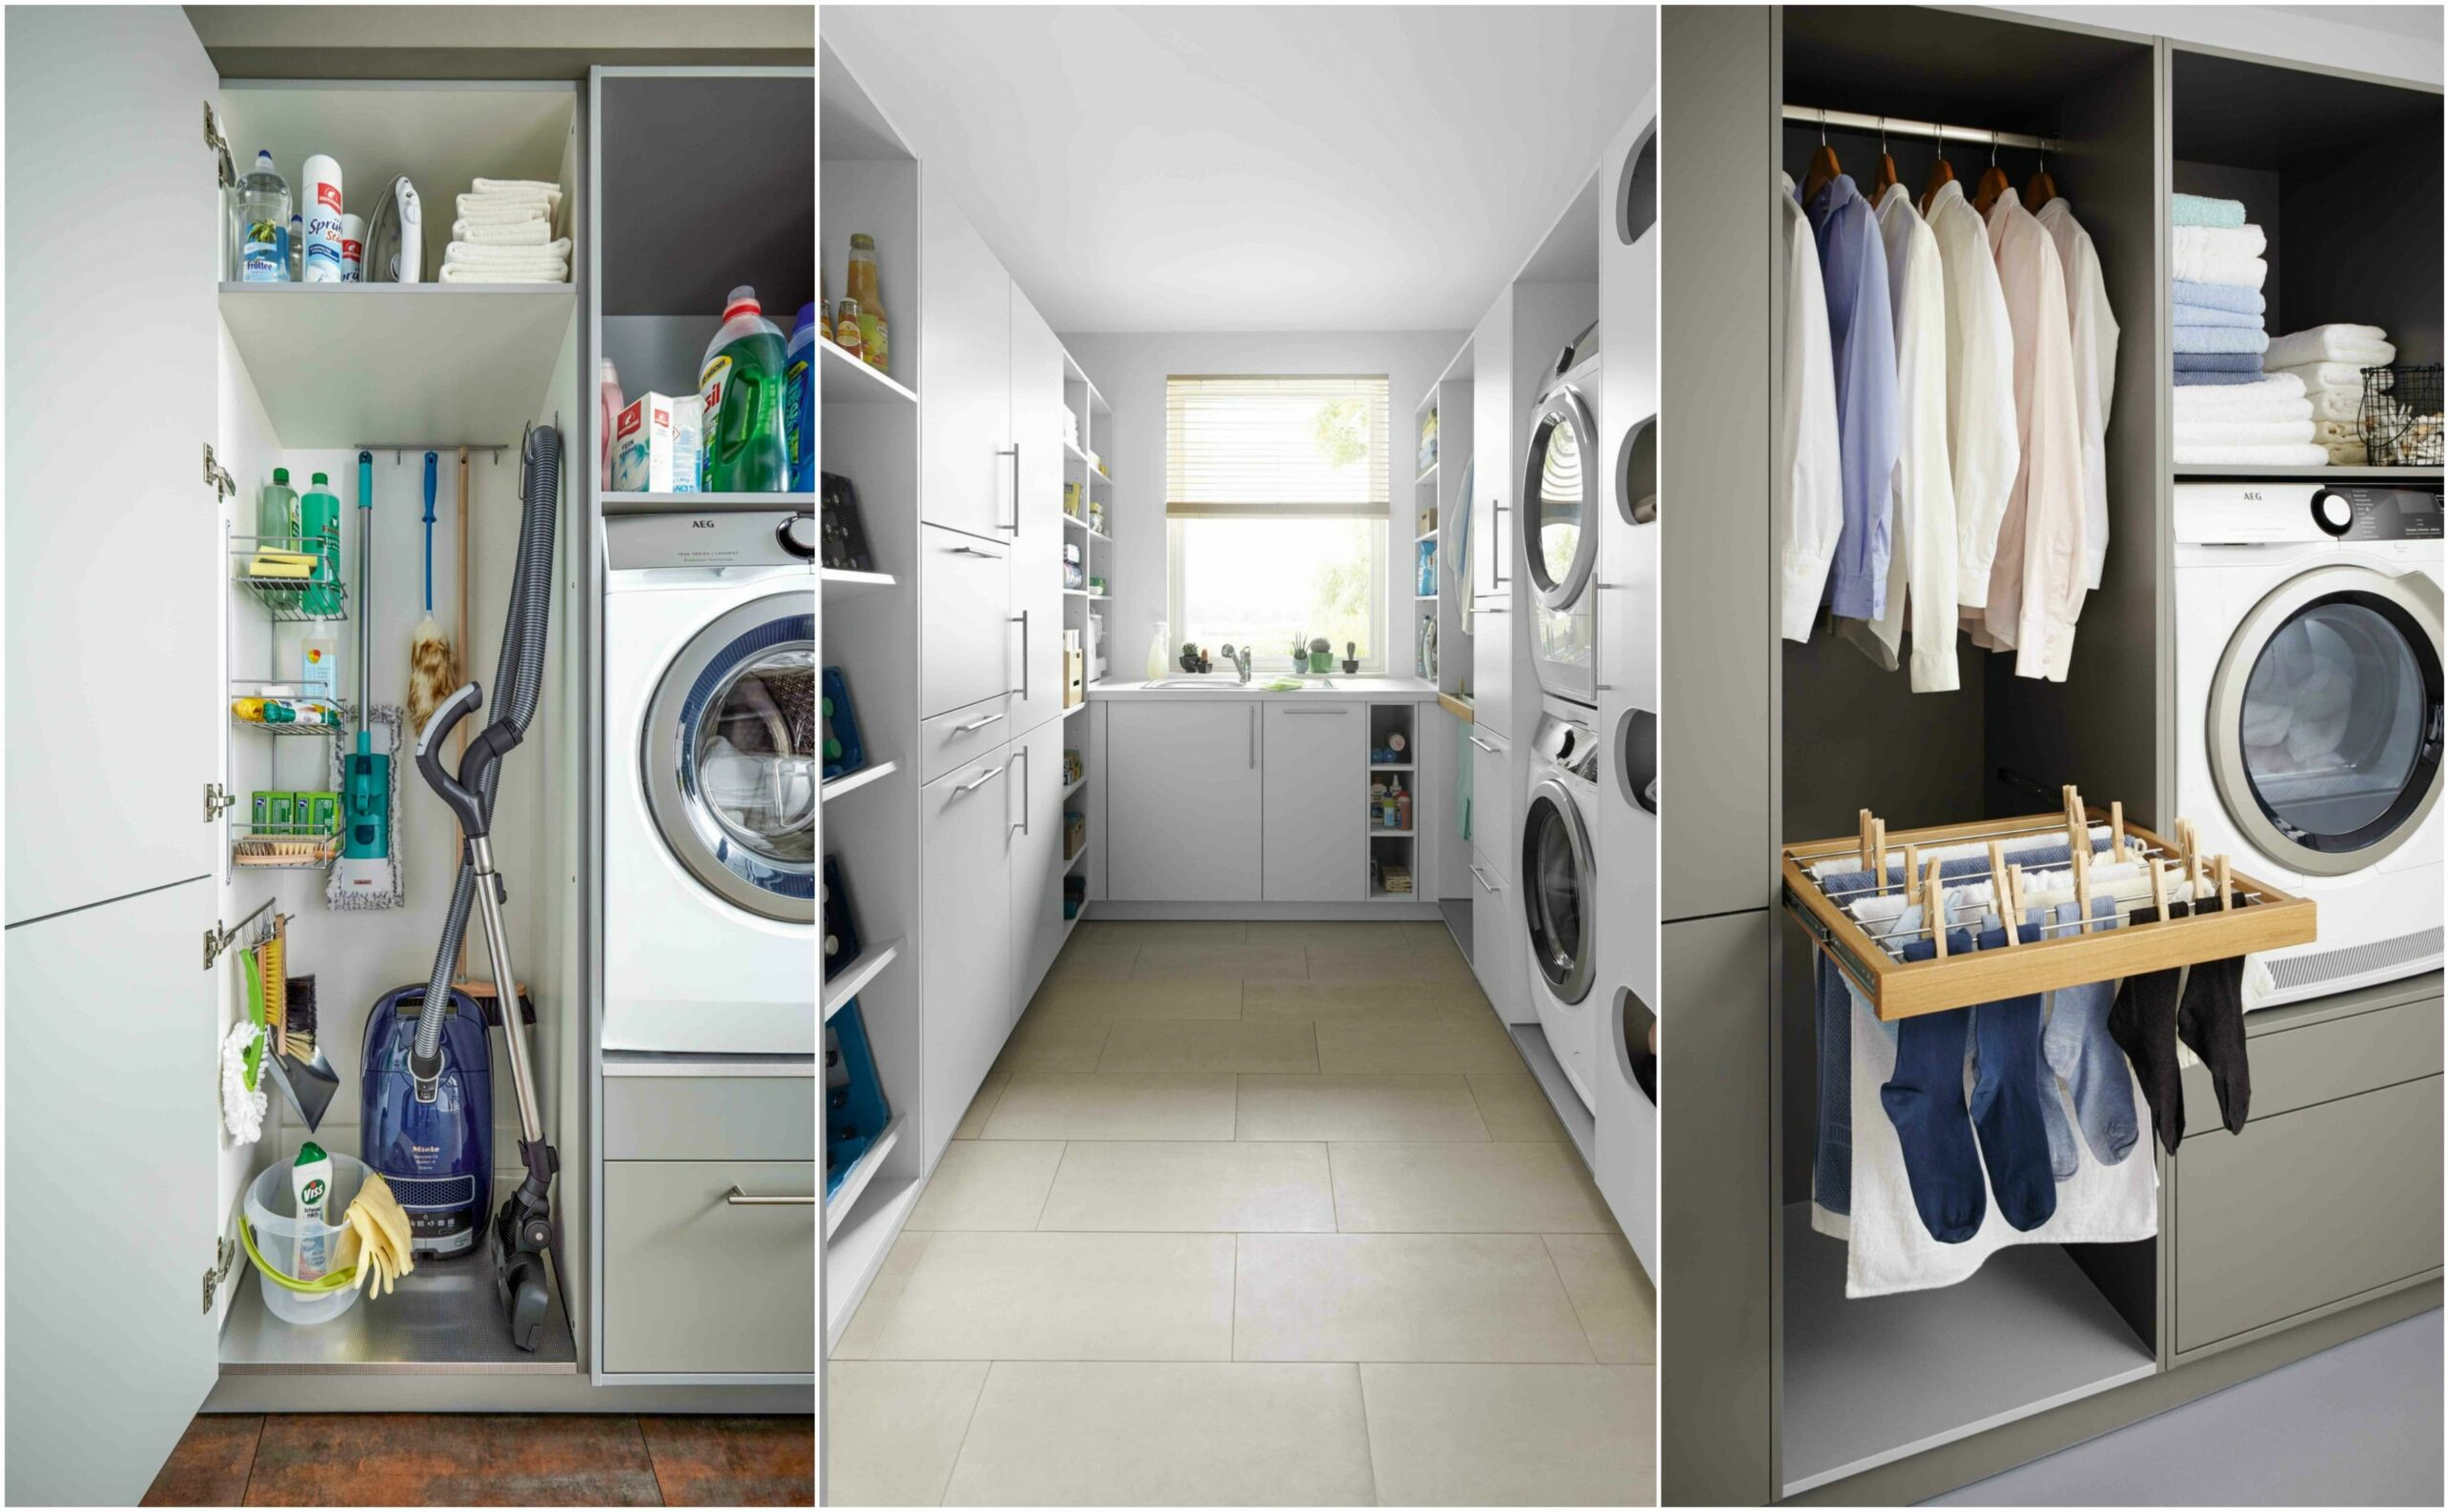 Utility Room Storage: 12 Ideas To Make Everyday Tasks Simple